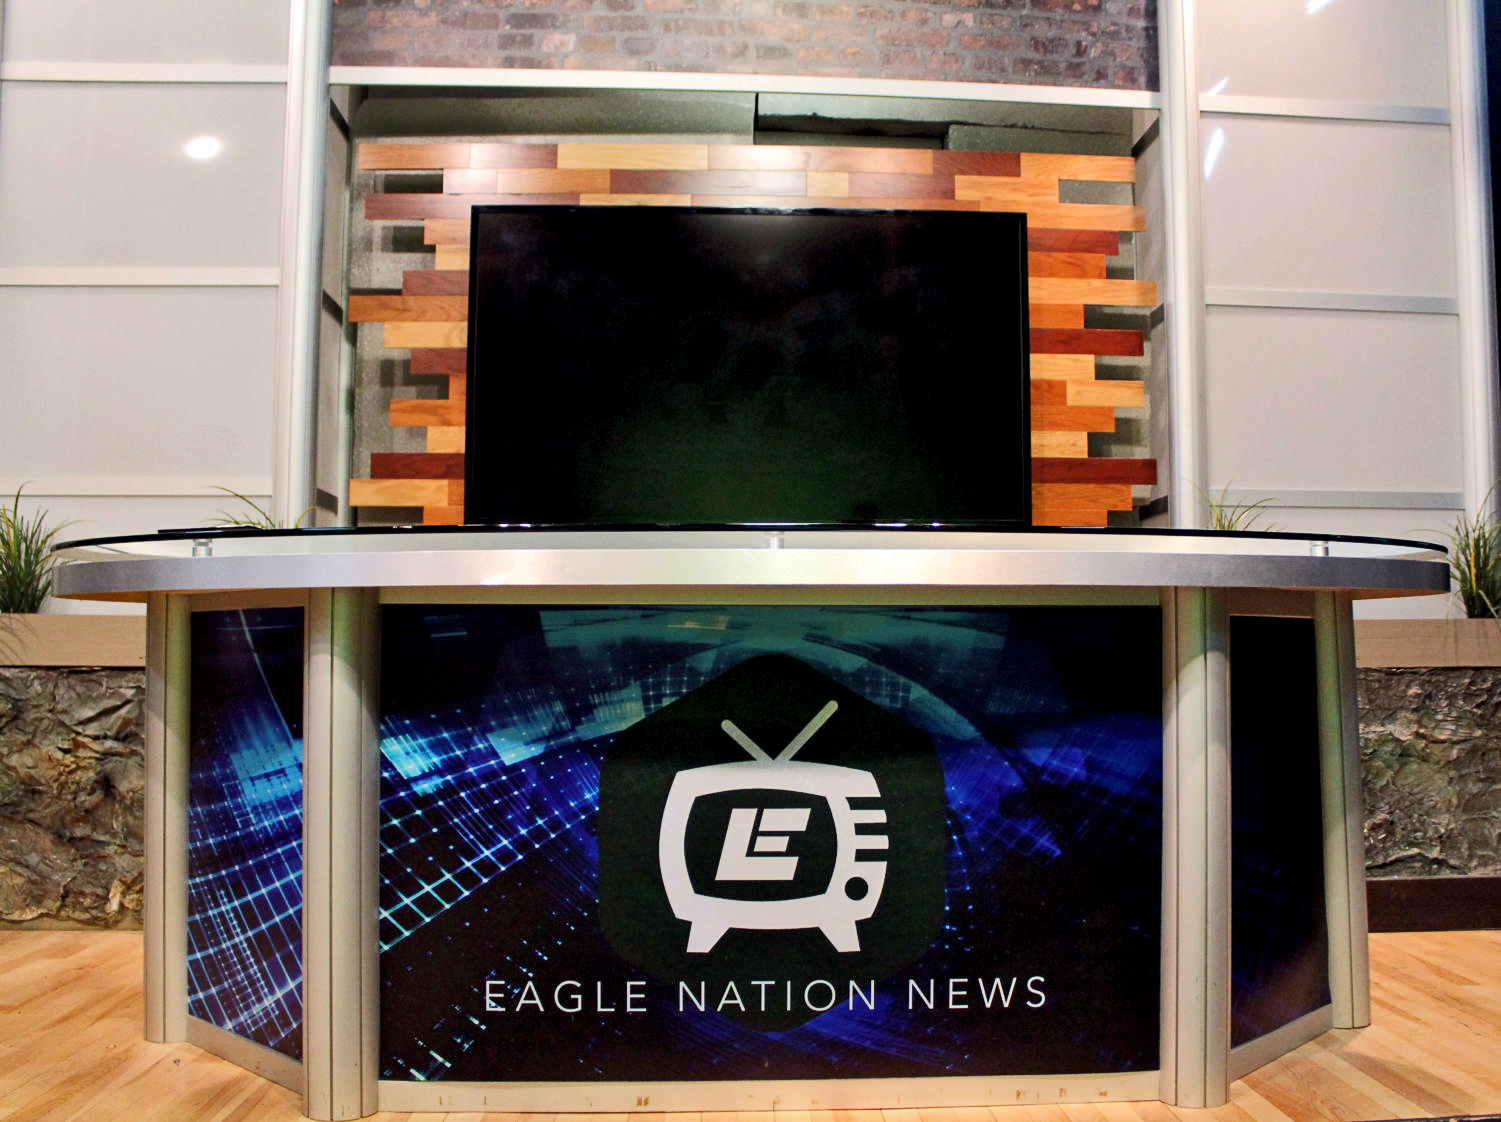 Eagle Nation News is the broadcast show produced by student journalists and advisor, Michael Hatch. The team creates a daily newscast shown live to the students of Prosper High School from 2:07 to 2:17. They have won multiple national awards, including The Best Of Show Award for two consecutive years.